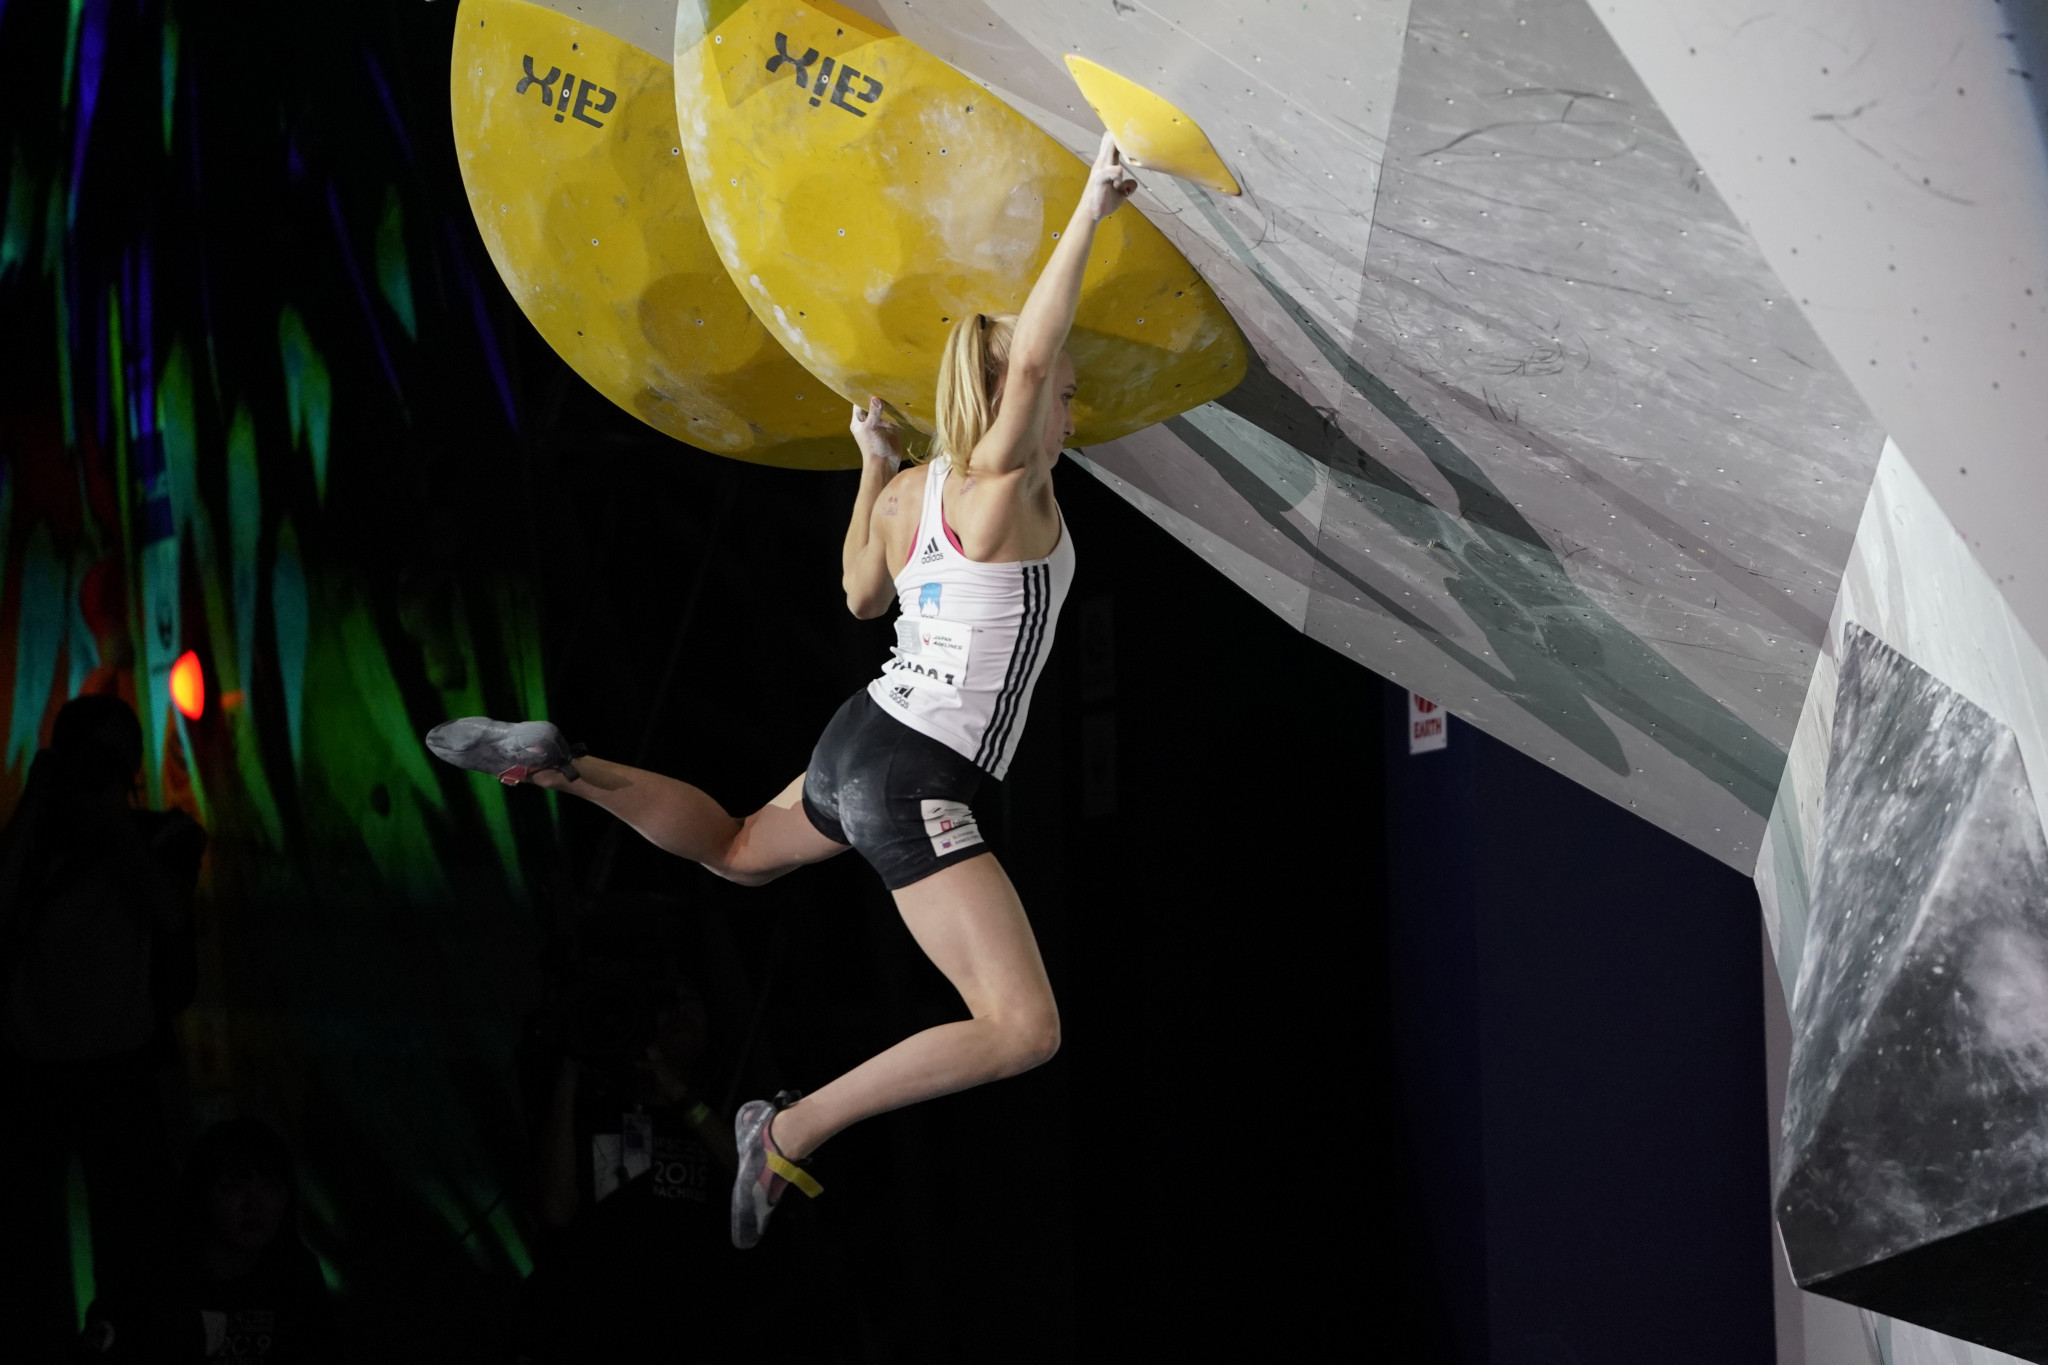 There was an upset in the women's event as Janja Garnbret failed to even reach the final ©Getty Images